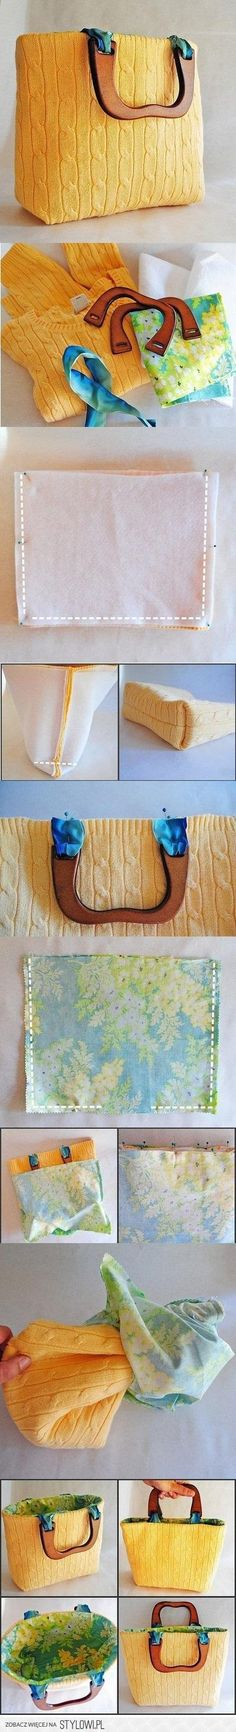 Cute purse made out of an old sweater!